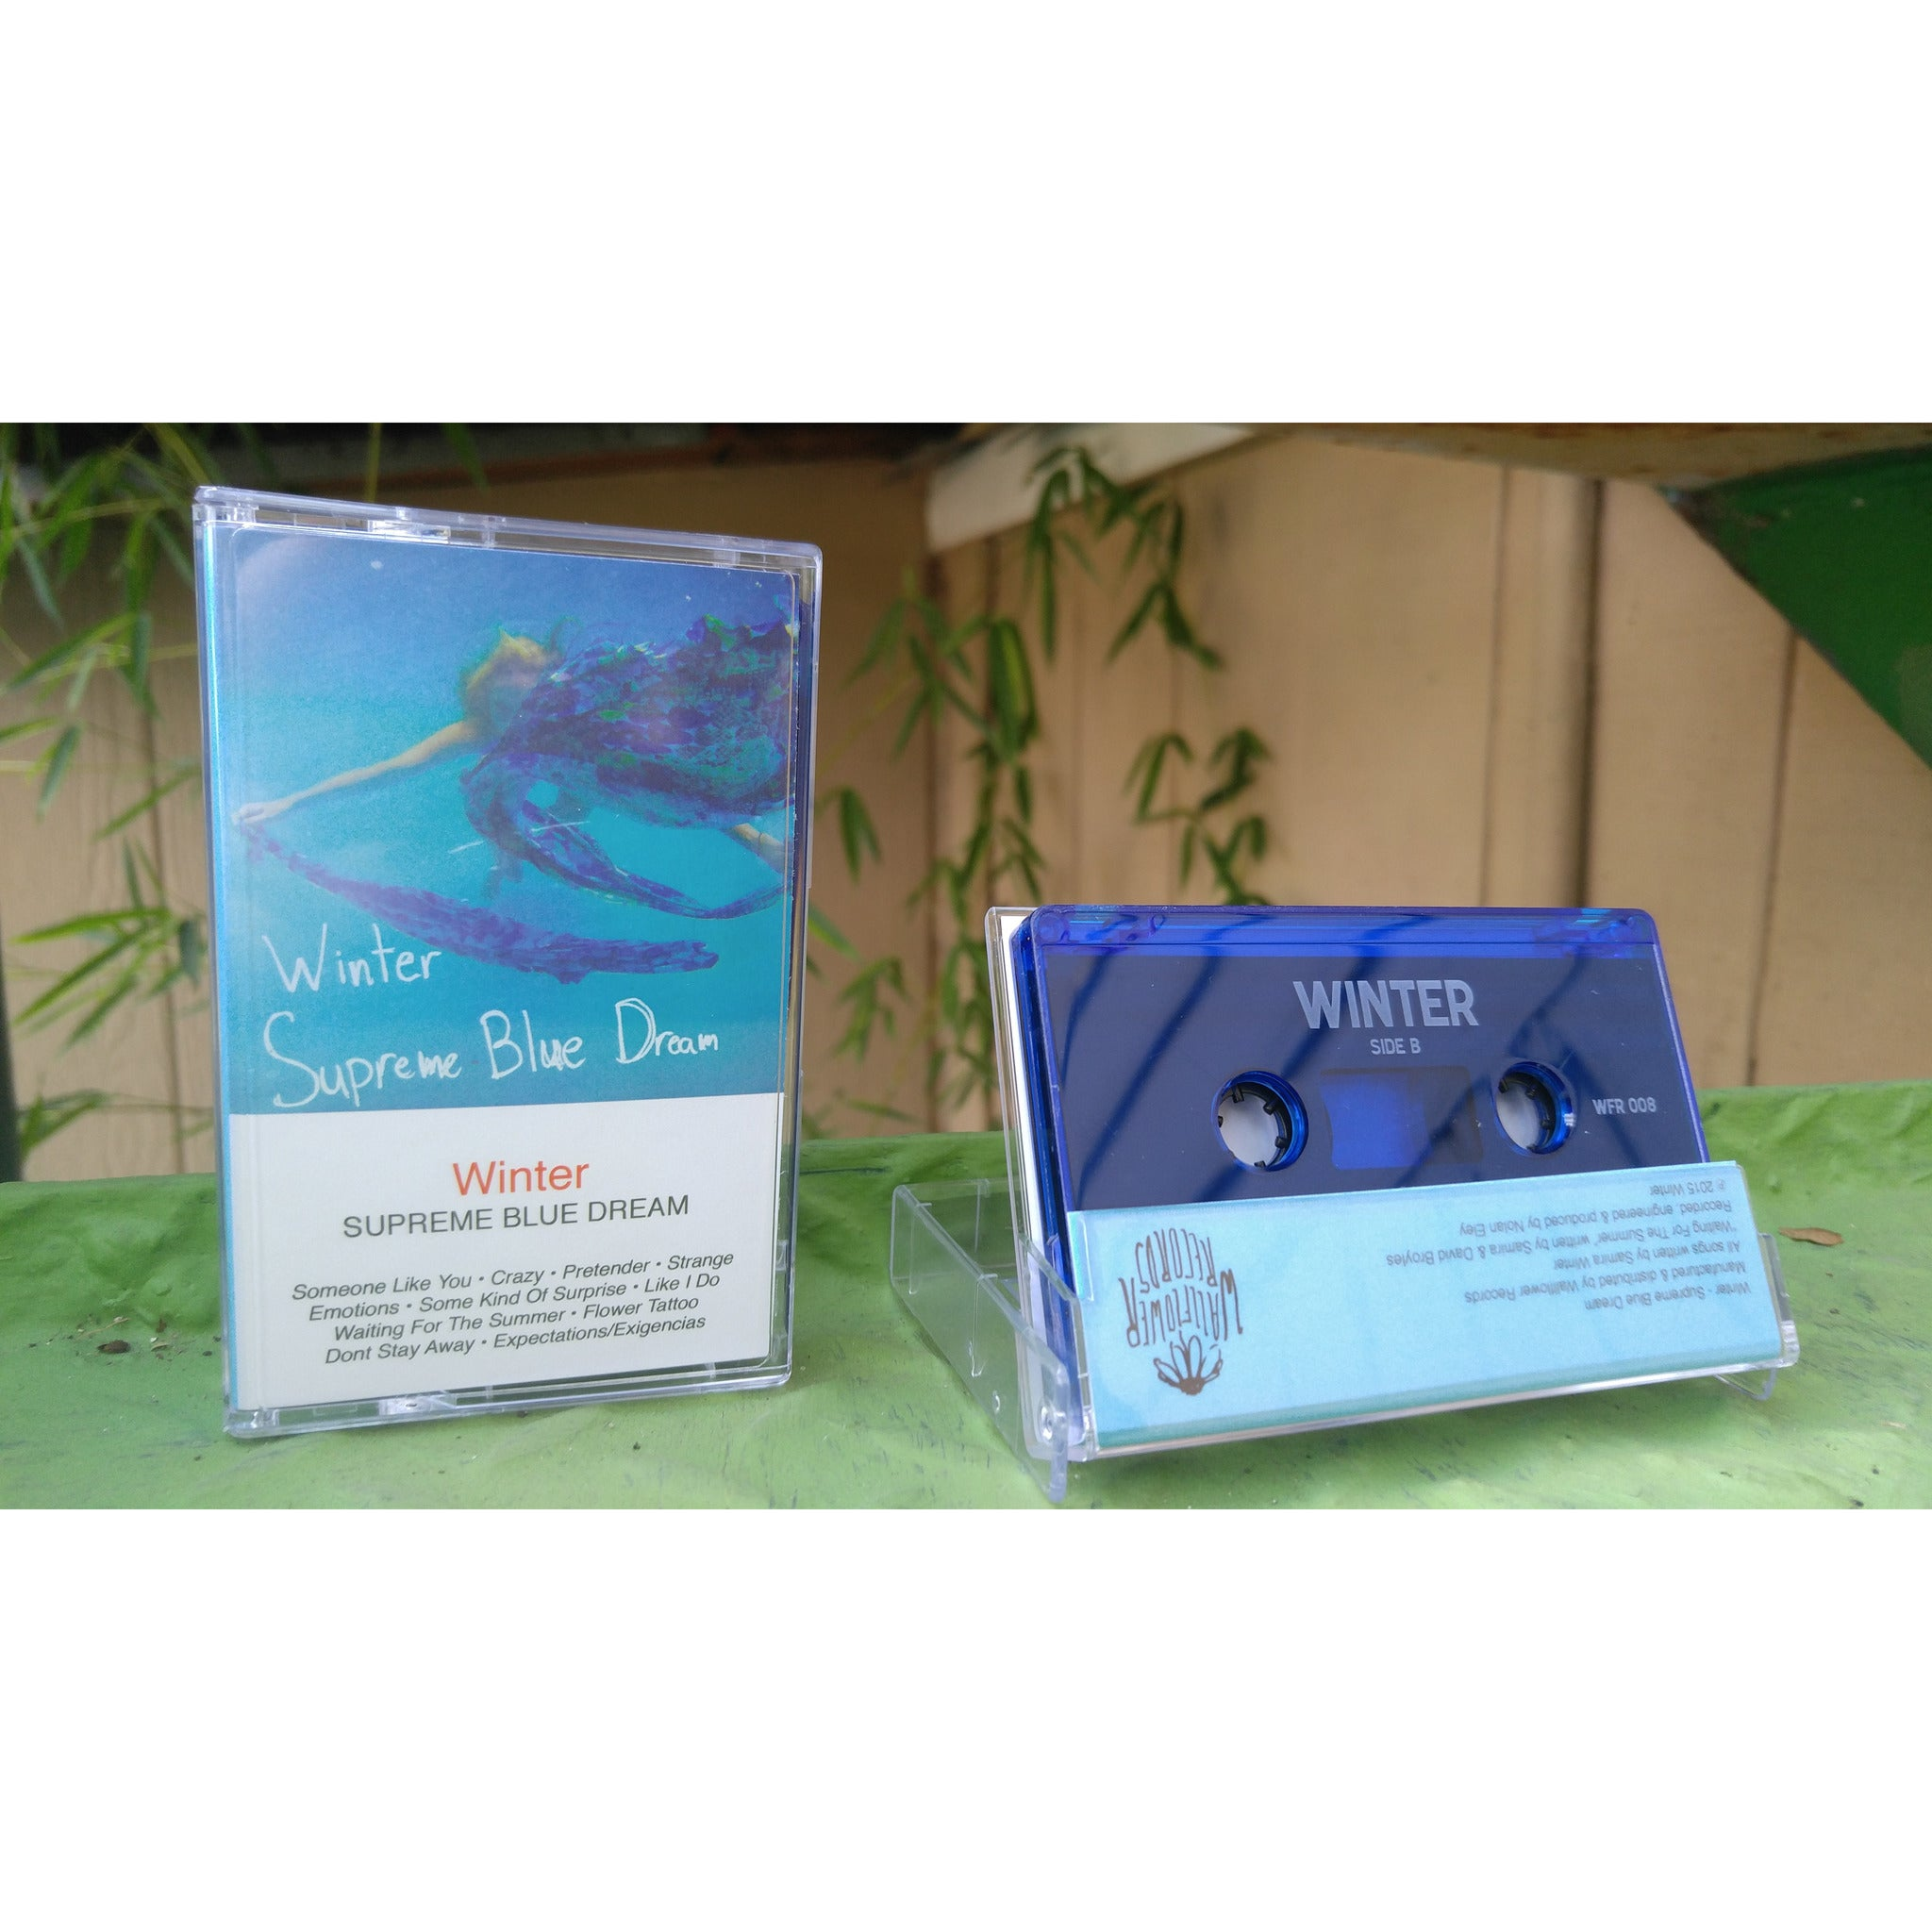 Winter - Supreme Blue Dream (Cassette) - Wallflower Records